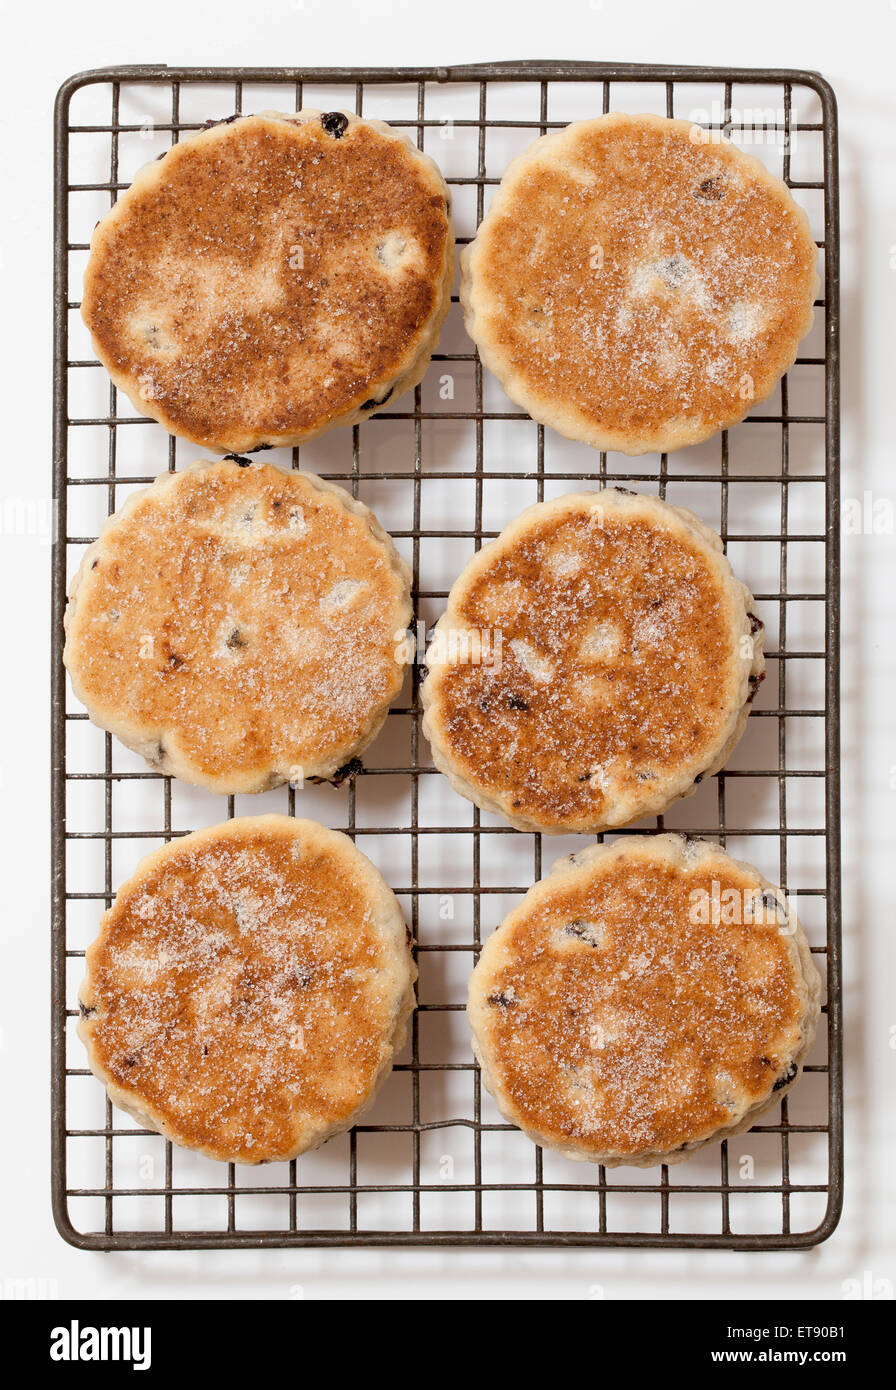 Welsh cakes or Welshcakes (or pics) - a traditional food delicacy in Wales - Stock Image